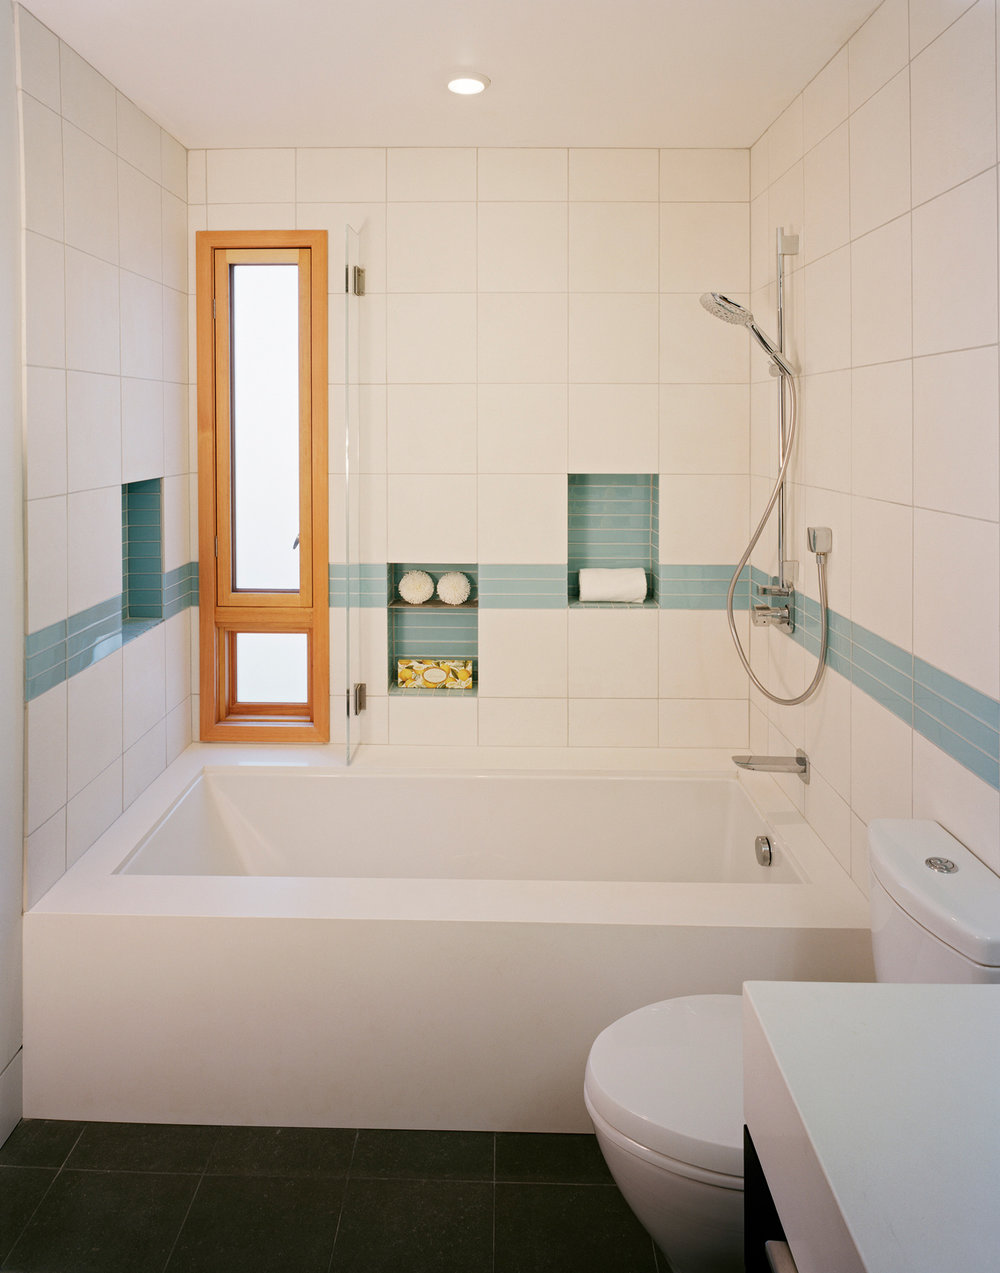 Guest-bathroom-in-new-modern-house.jpg